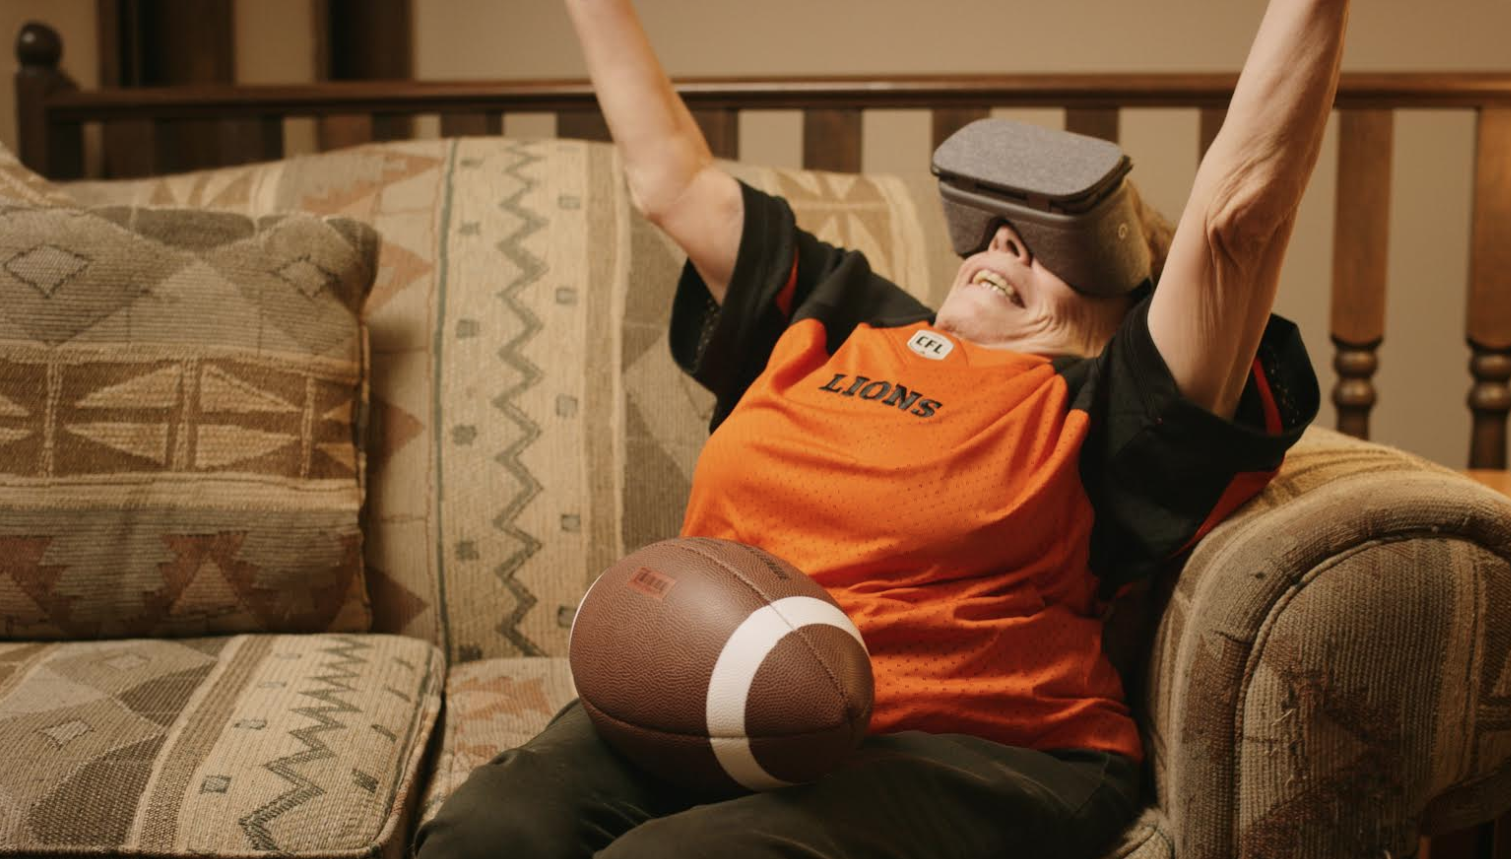 TELUS brings superfan to BC Lions game using the power of virtual reality